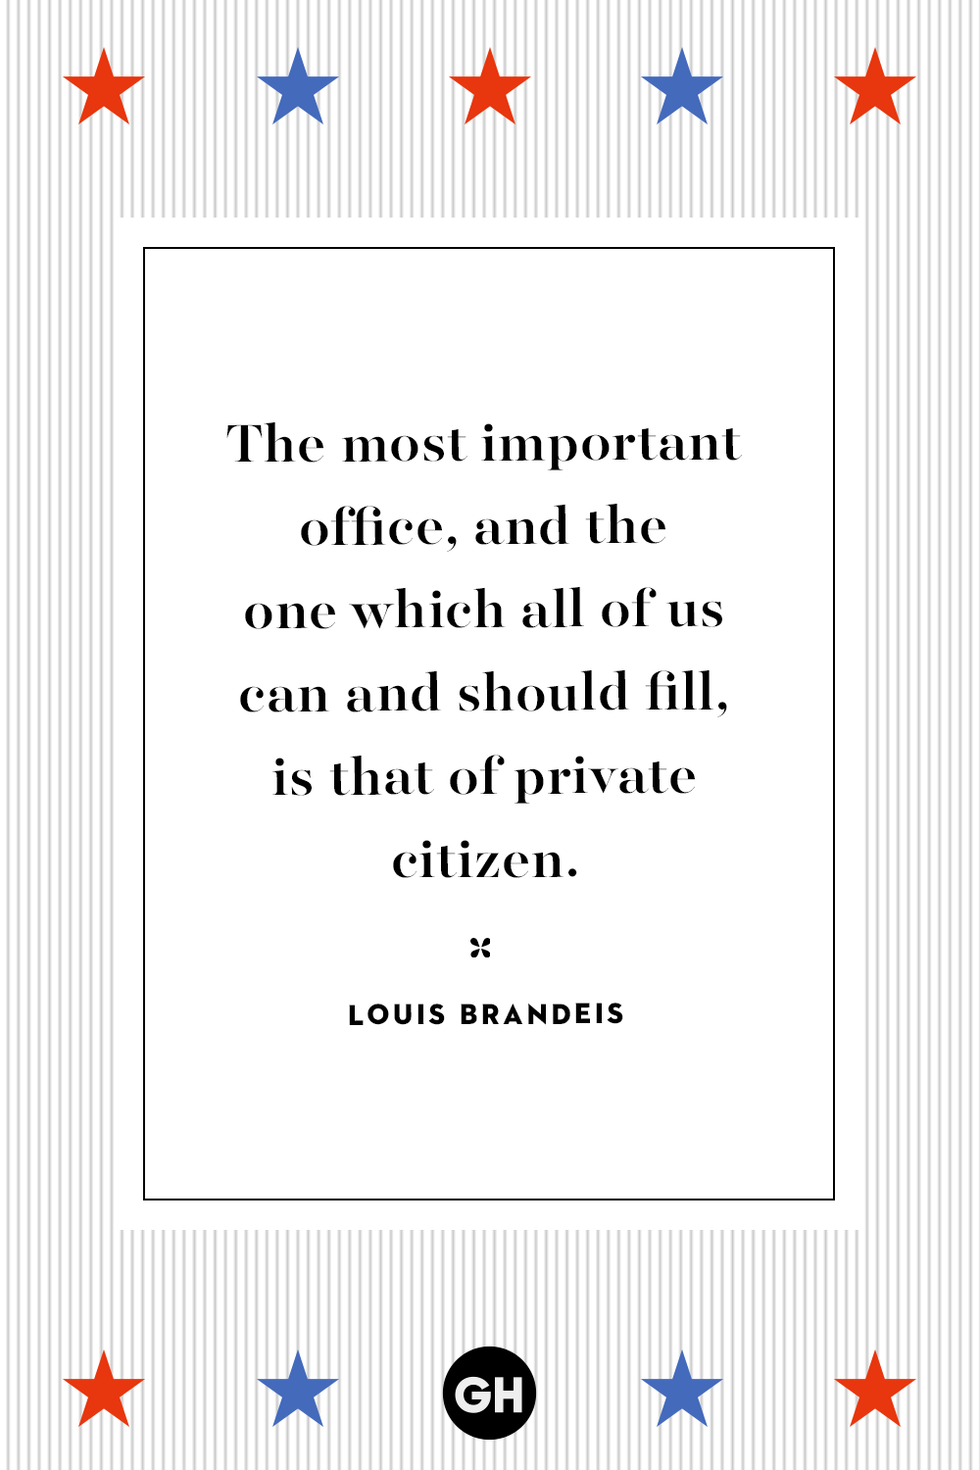 election-quotes-voting-quotes-02-louis-brandeis-1567019362